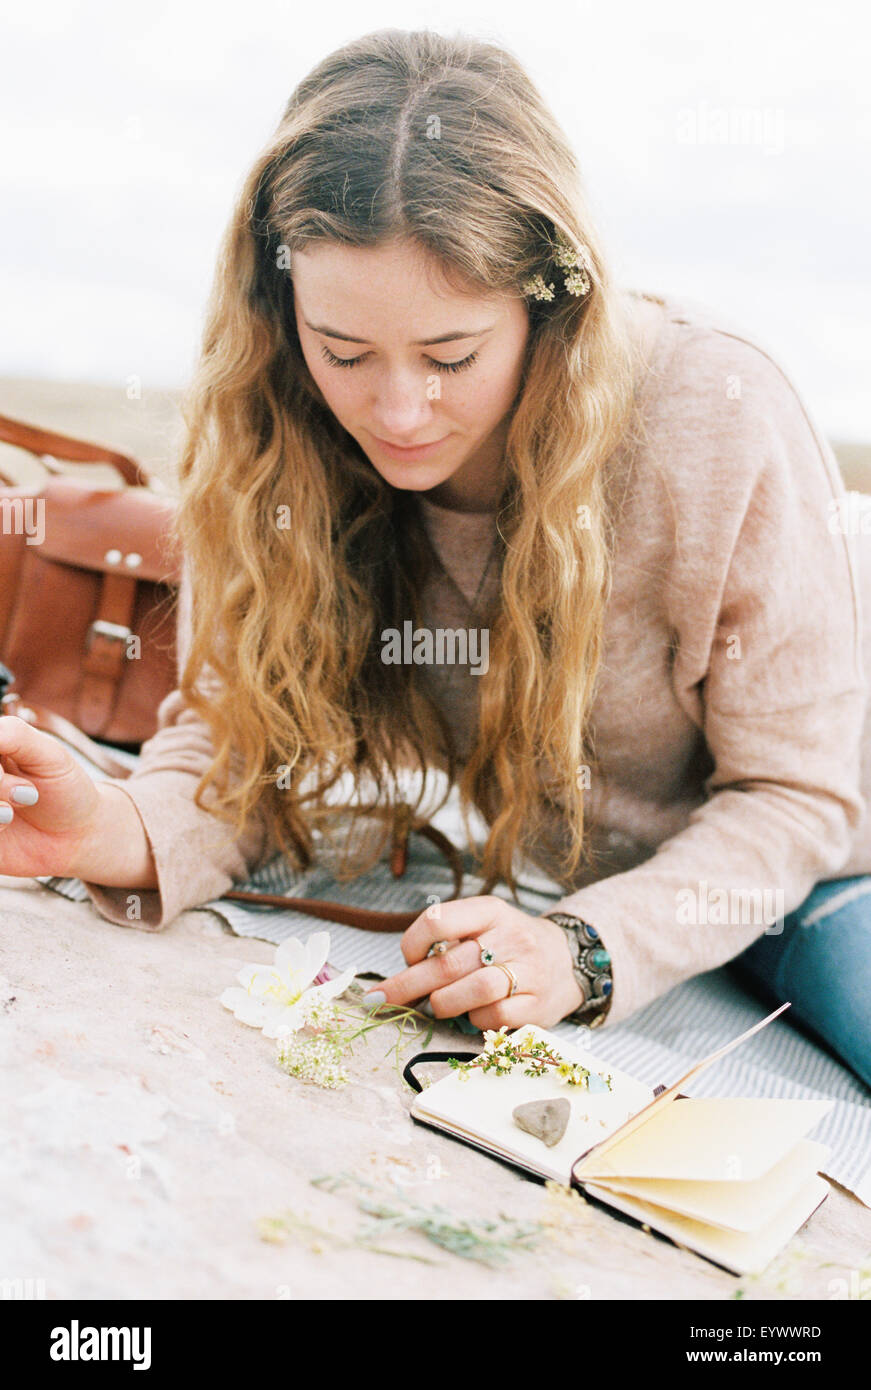 Woman putting flowers between the pages of book. - Stock Image